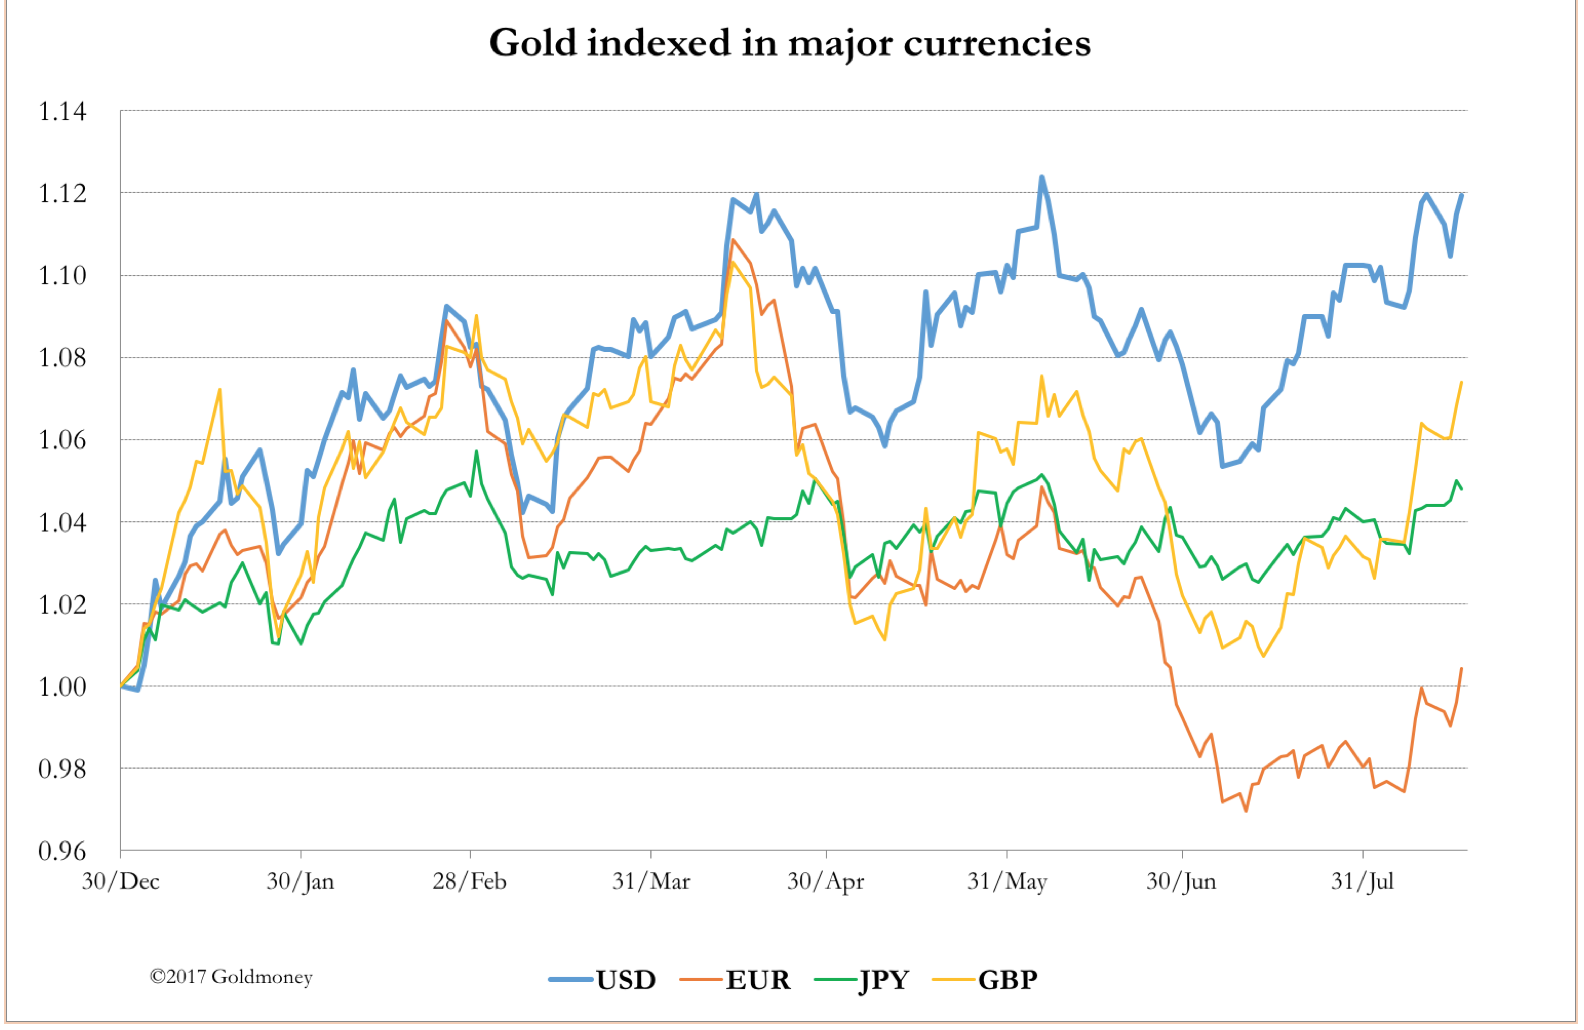 Gold prices in all major currencies